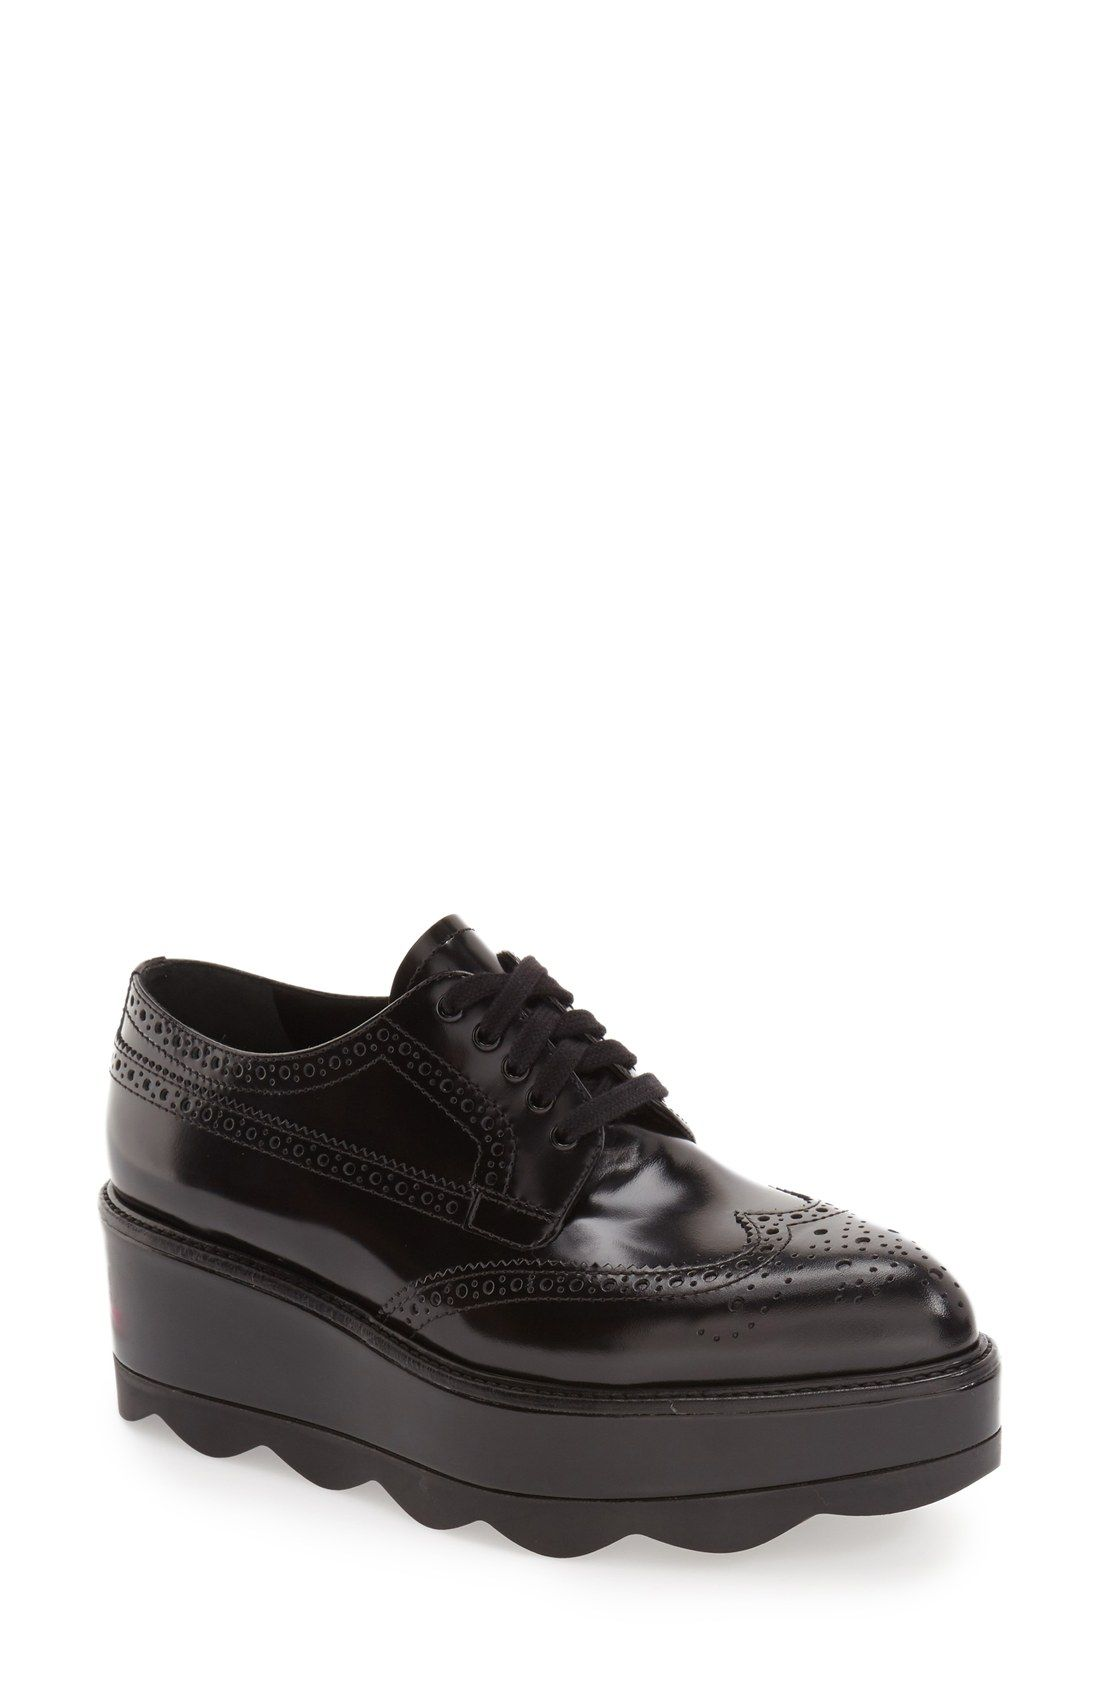 2f3c719c9dba Free shipping and returns on Prada Scalloped Platform Oxford (Women) at  Nordstrom.com. A dramatically lugged platform sole adds unmistakable modern  ...